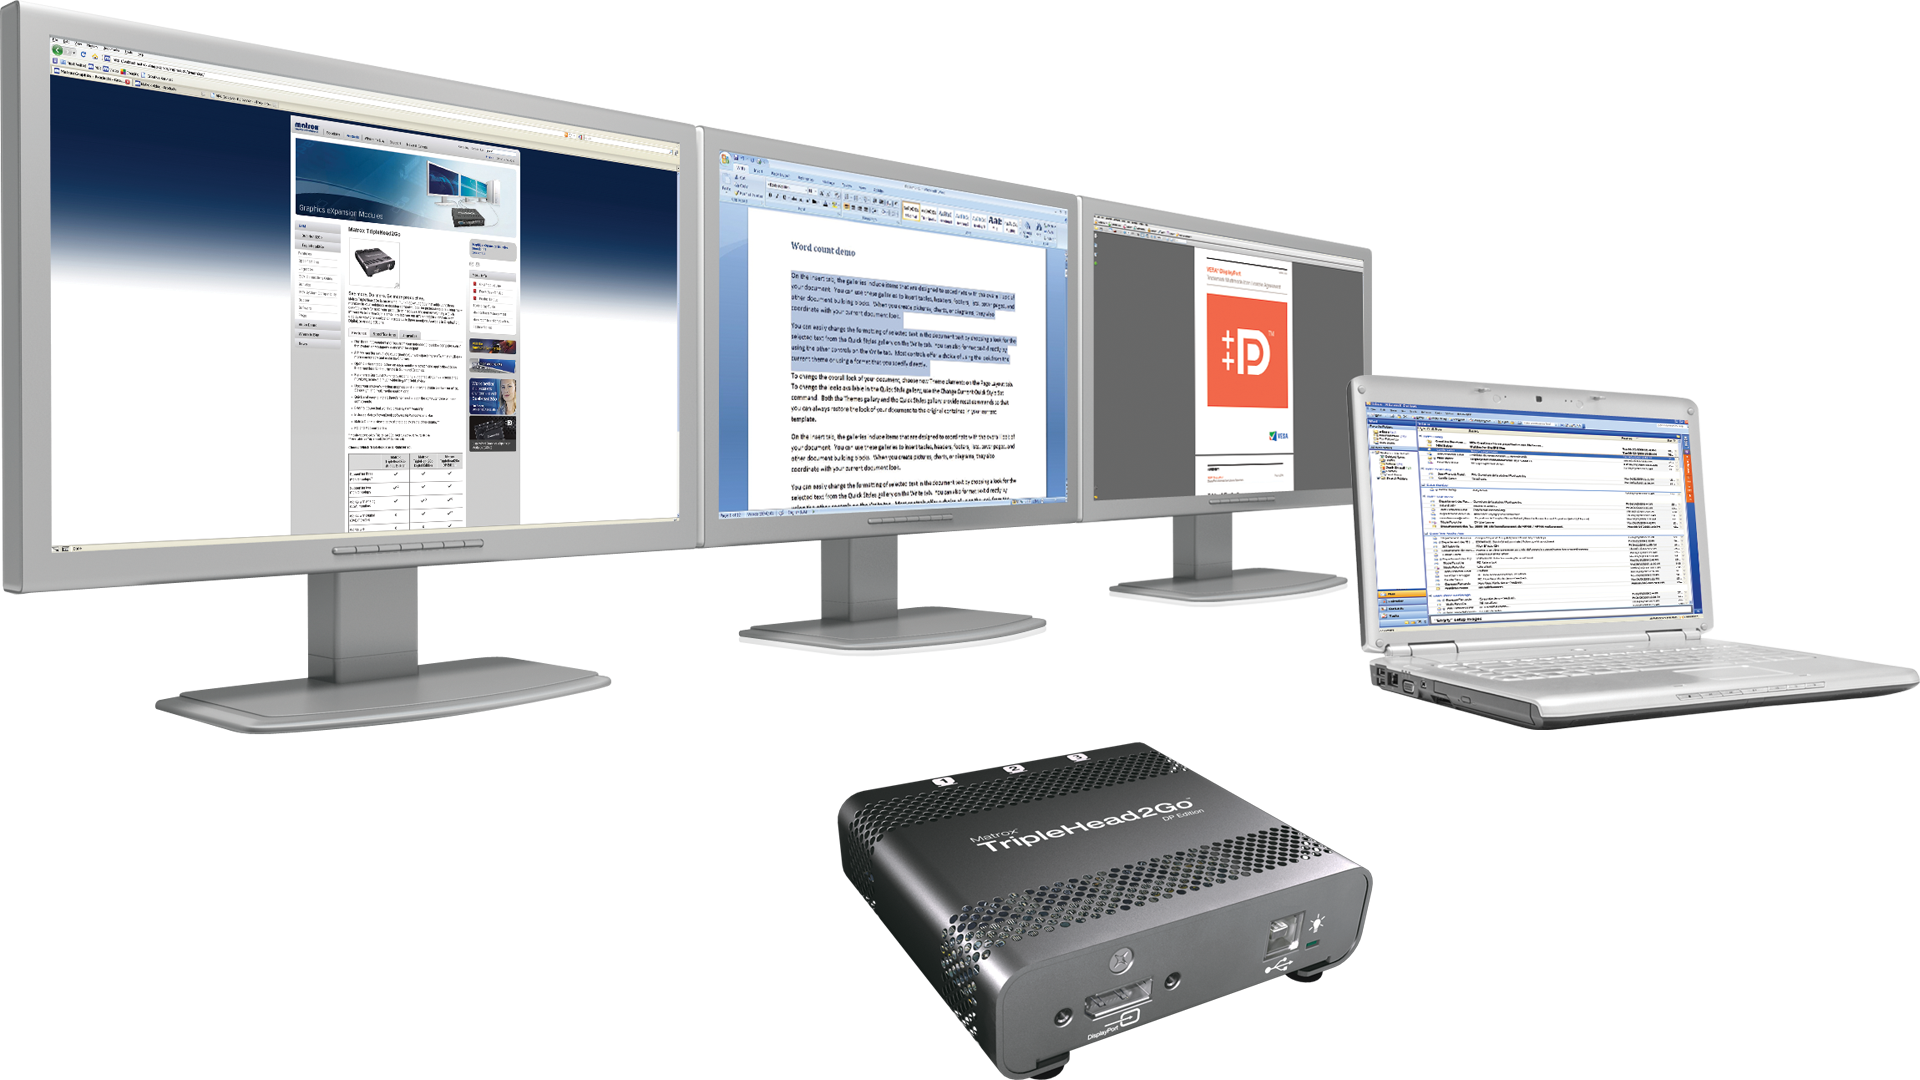 TripleHead2Go DP Edition - Increase your productivity by adding three monitors to your laptop or desktop